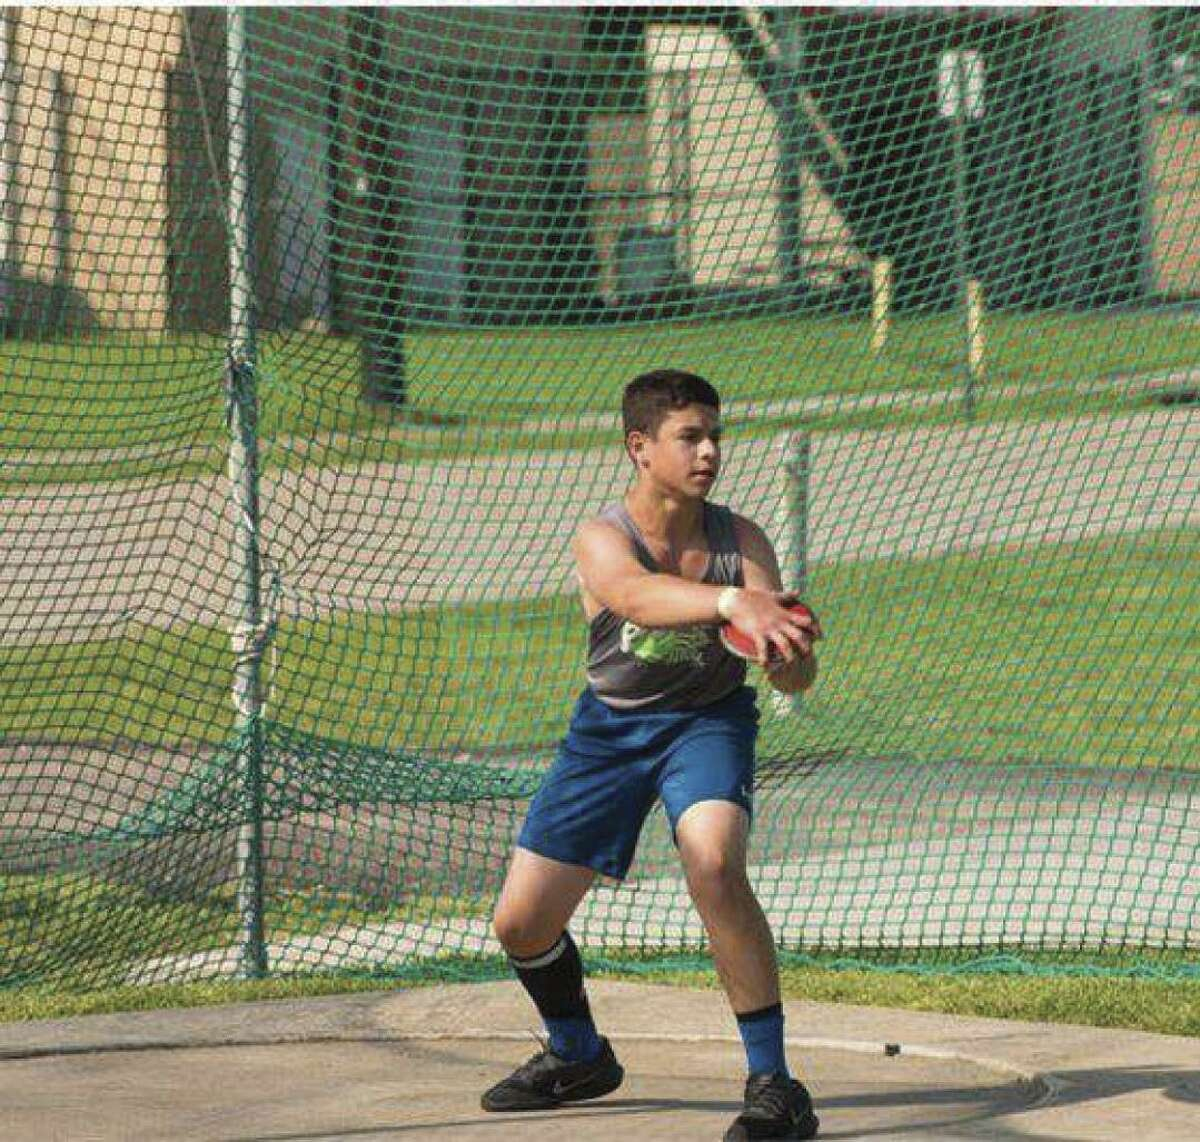 The City of Conroe Summer Youth Track and Field program is for boys and girls ages 8 to 18. The summer track season runs in June and July with most meets held on weekday evenings in the Greater Houston area. Practices are held weekly in the Conroe area with one to two meets per week. Registration ends May 27. The registration fee is $65 for Conroe residents and $81 for non-residents. Contact the C.K. Ray Recreation Center at 936-522-3900 or online at cityofconroe.org for more information.